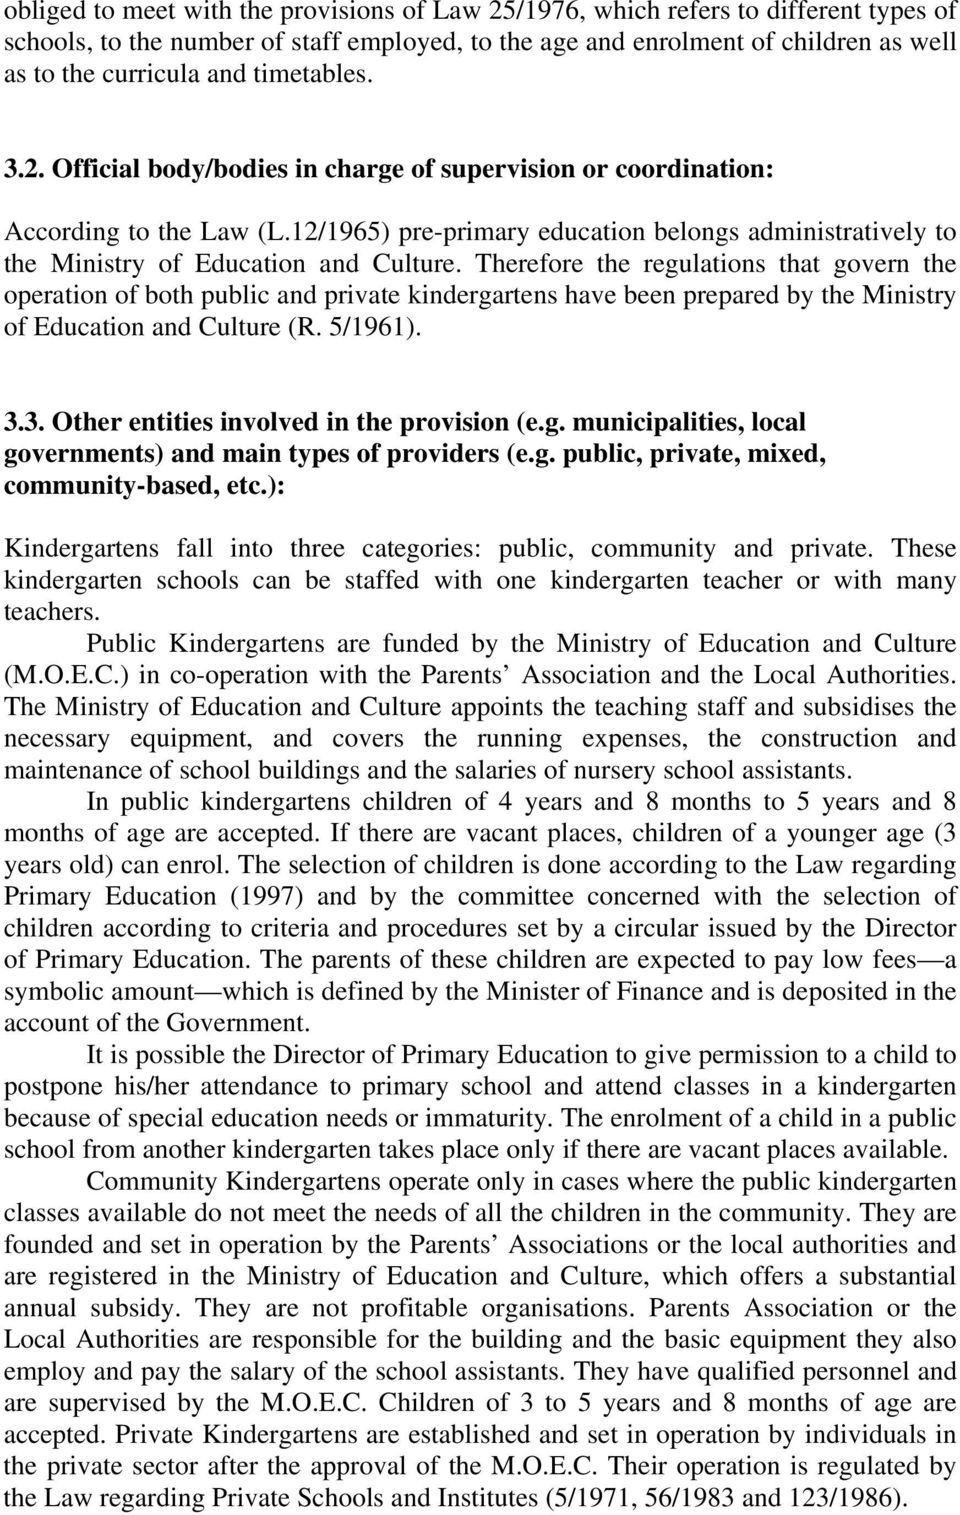 12/1965) pre-primary education belongs administratively to the Ministry of Education and Culture.